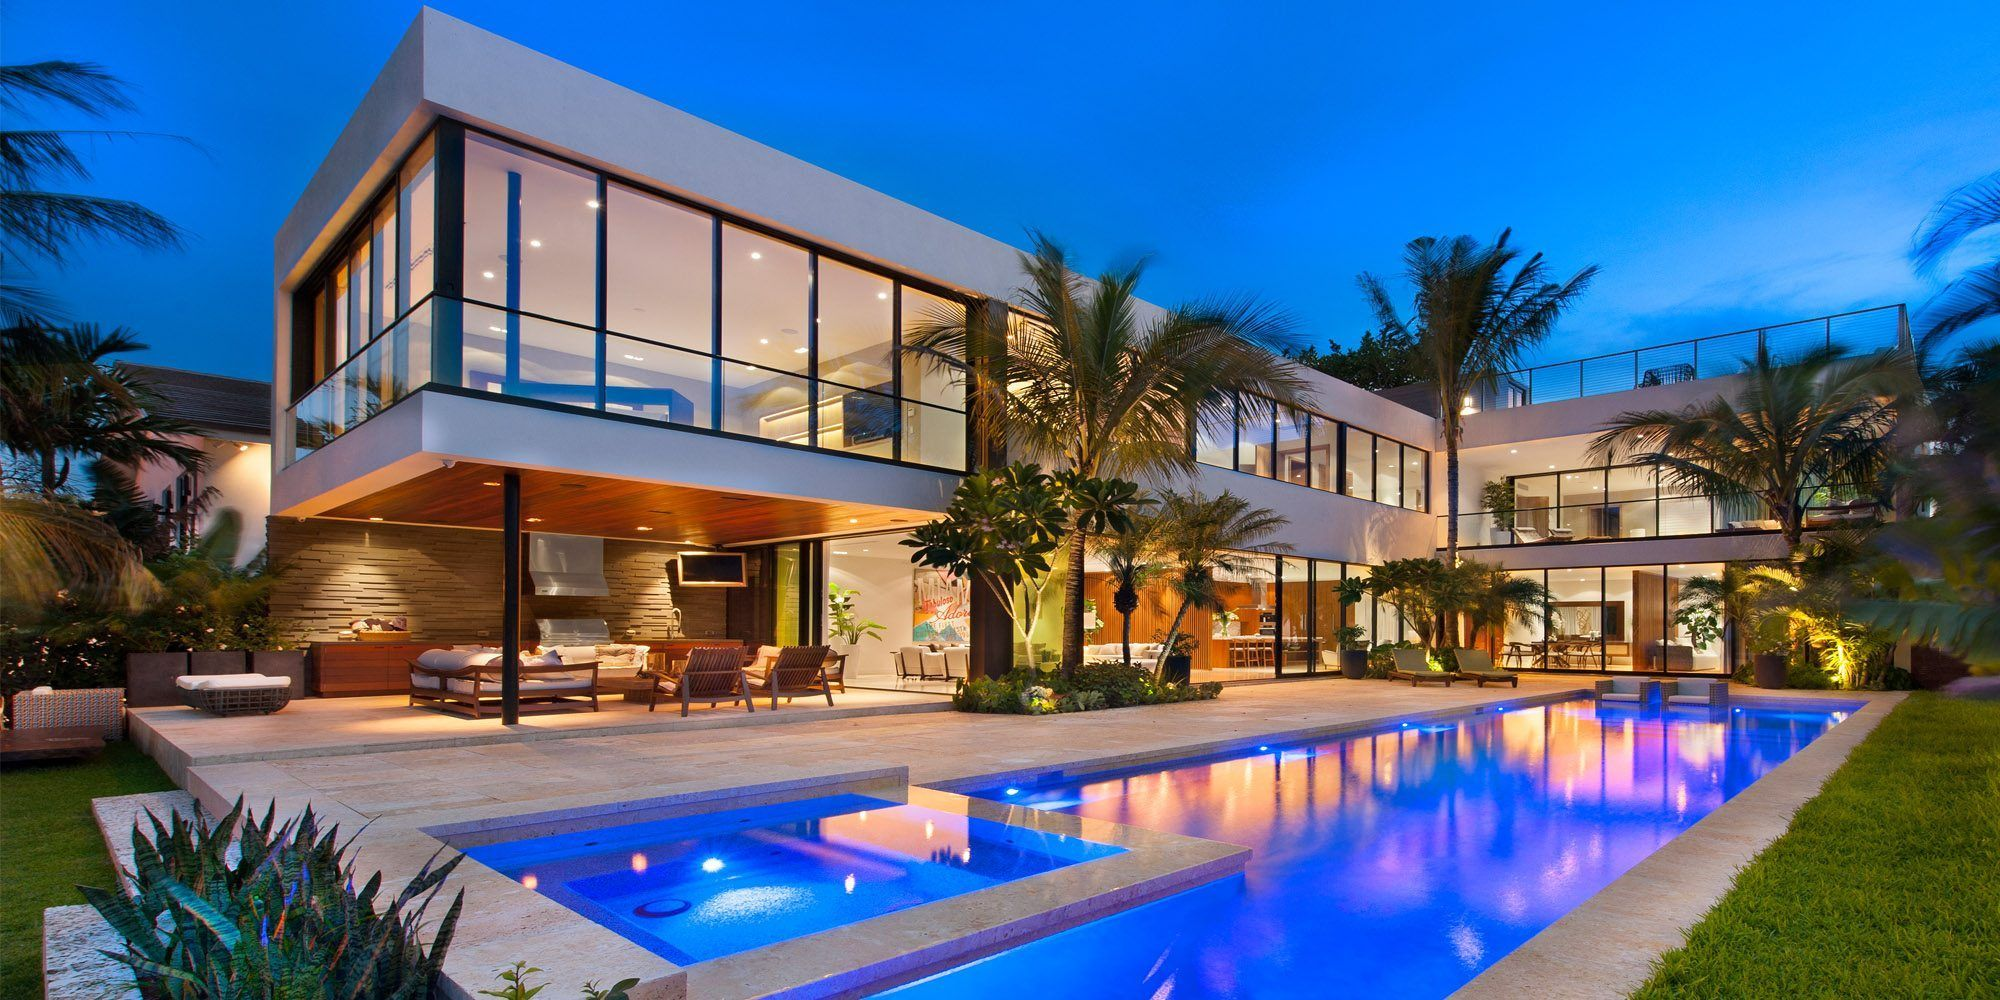 5-Things-to-Consider-When-Buying-Luxury-Residence-for-Holidays